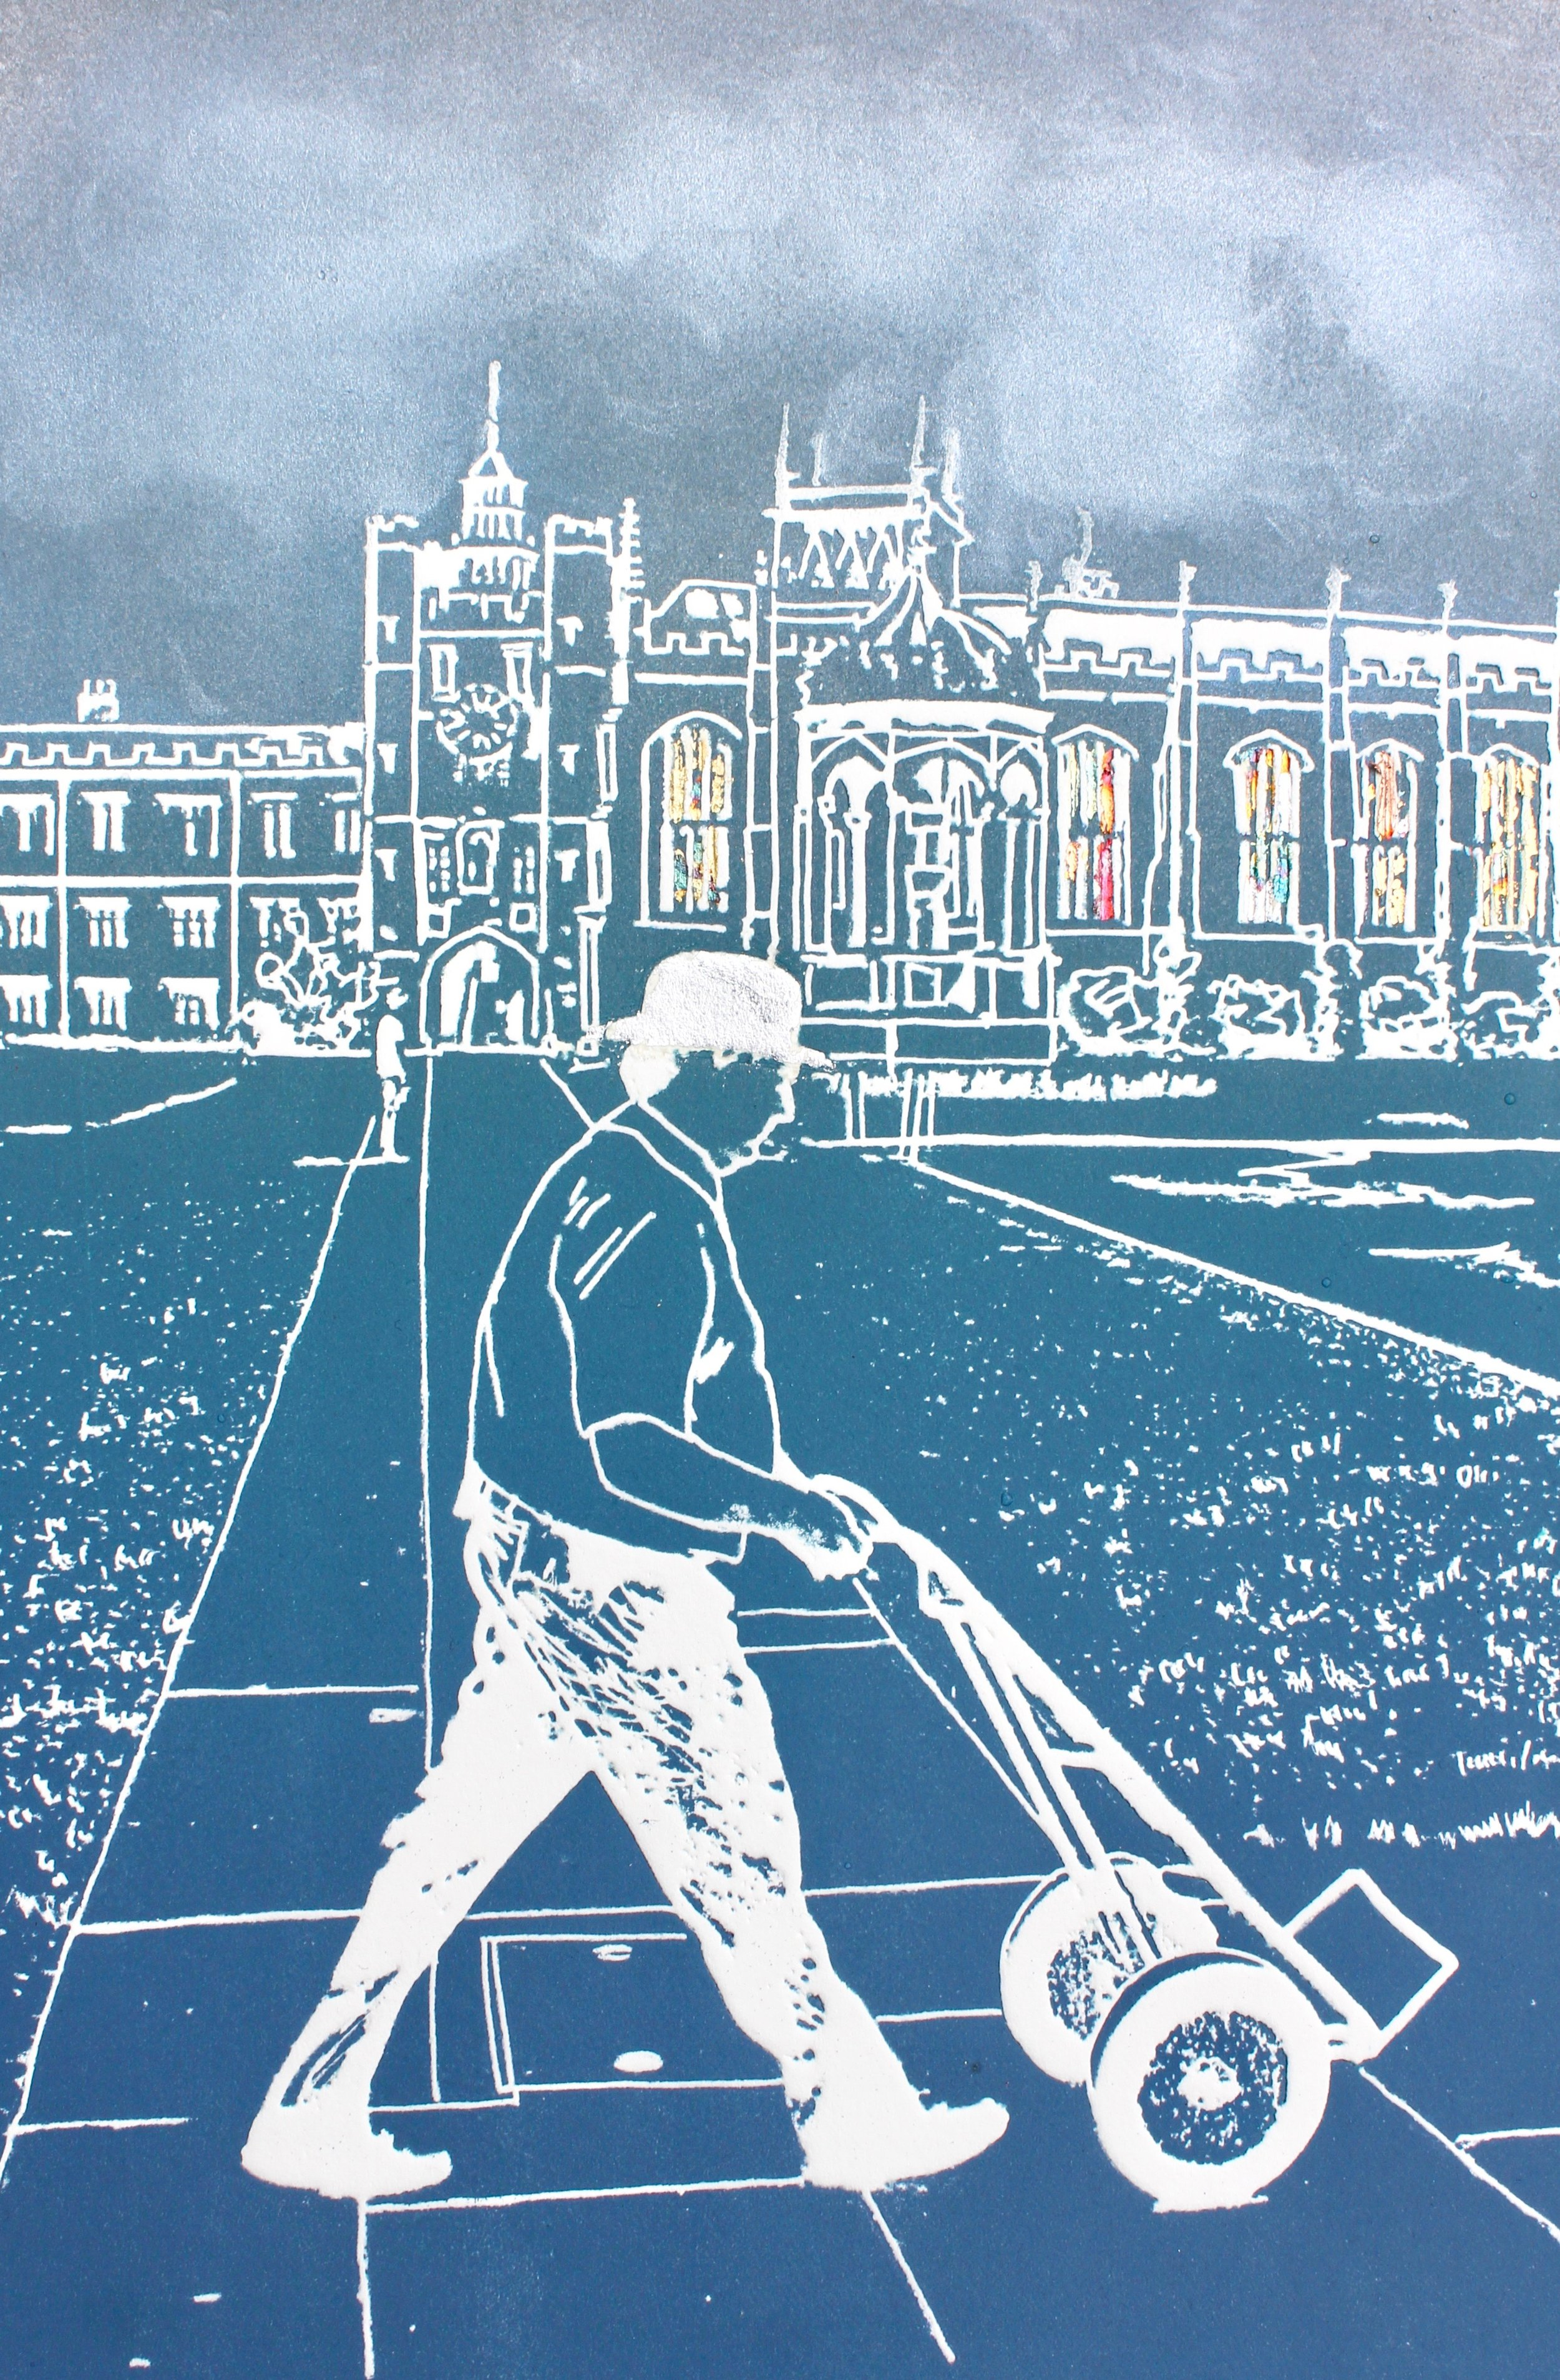 Another Day at the Office ed9   solar plate etching   47 x 57 cm  £215 framed